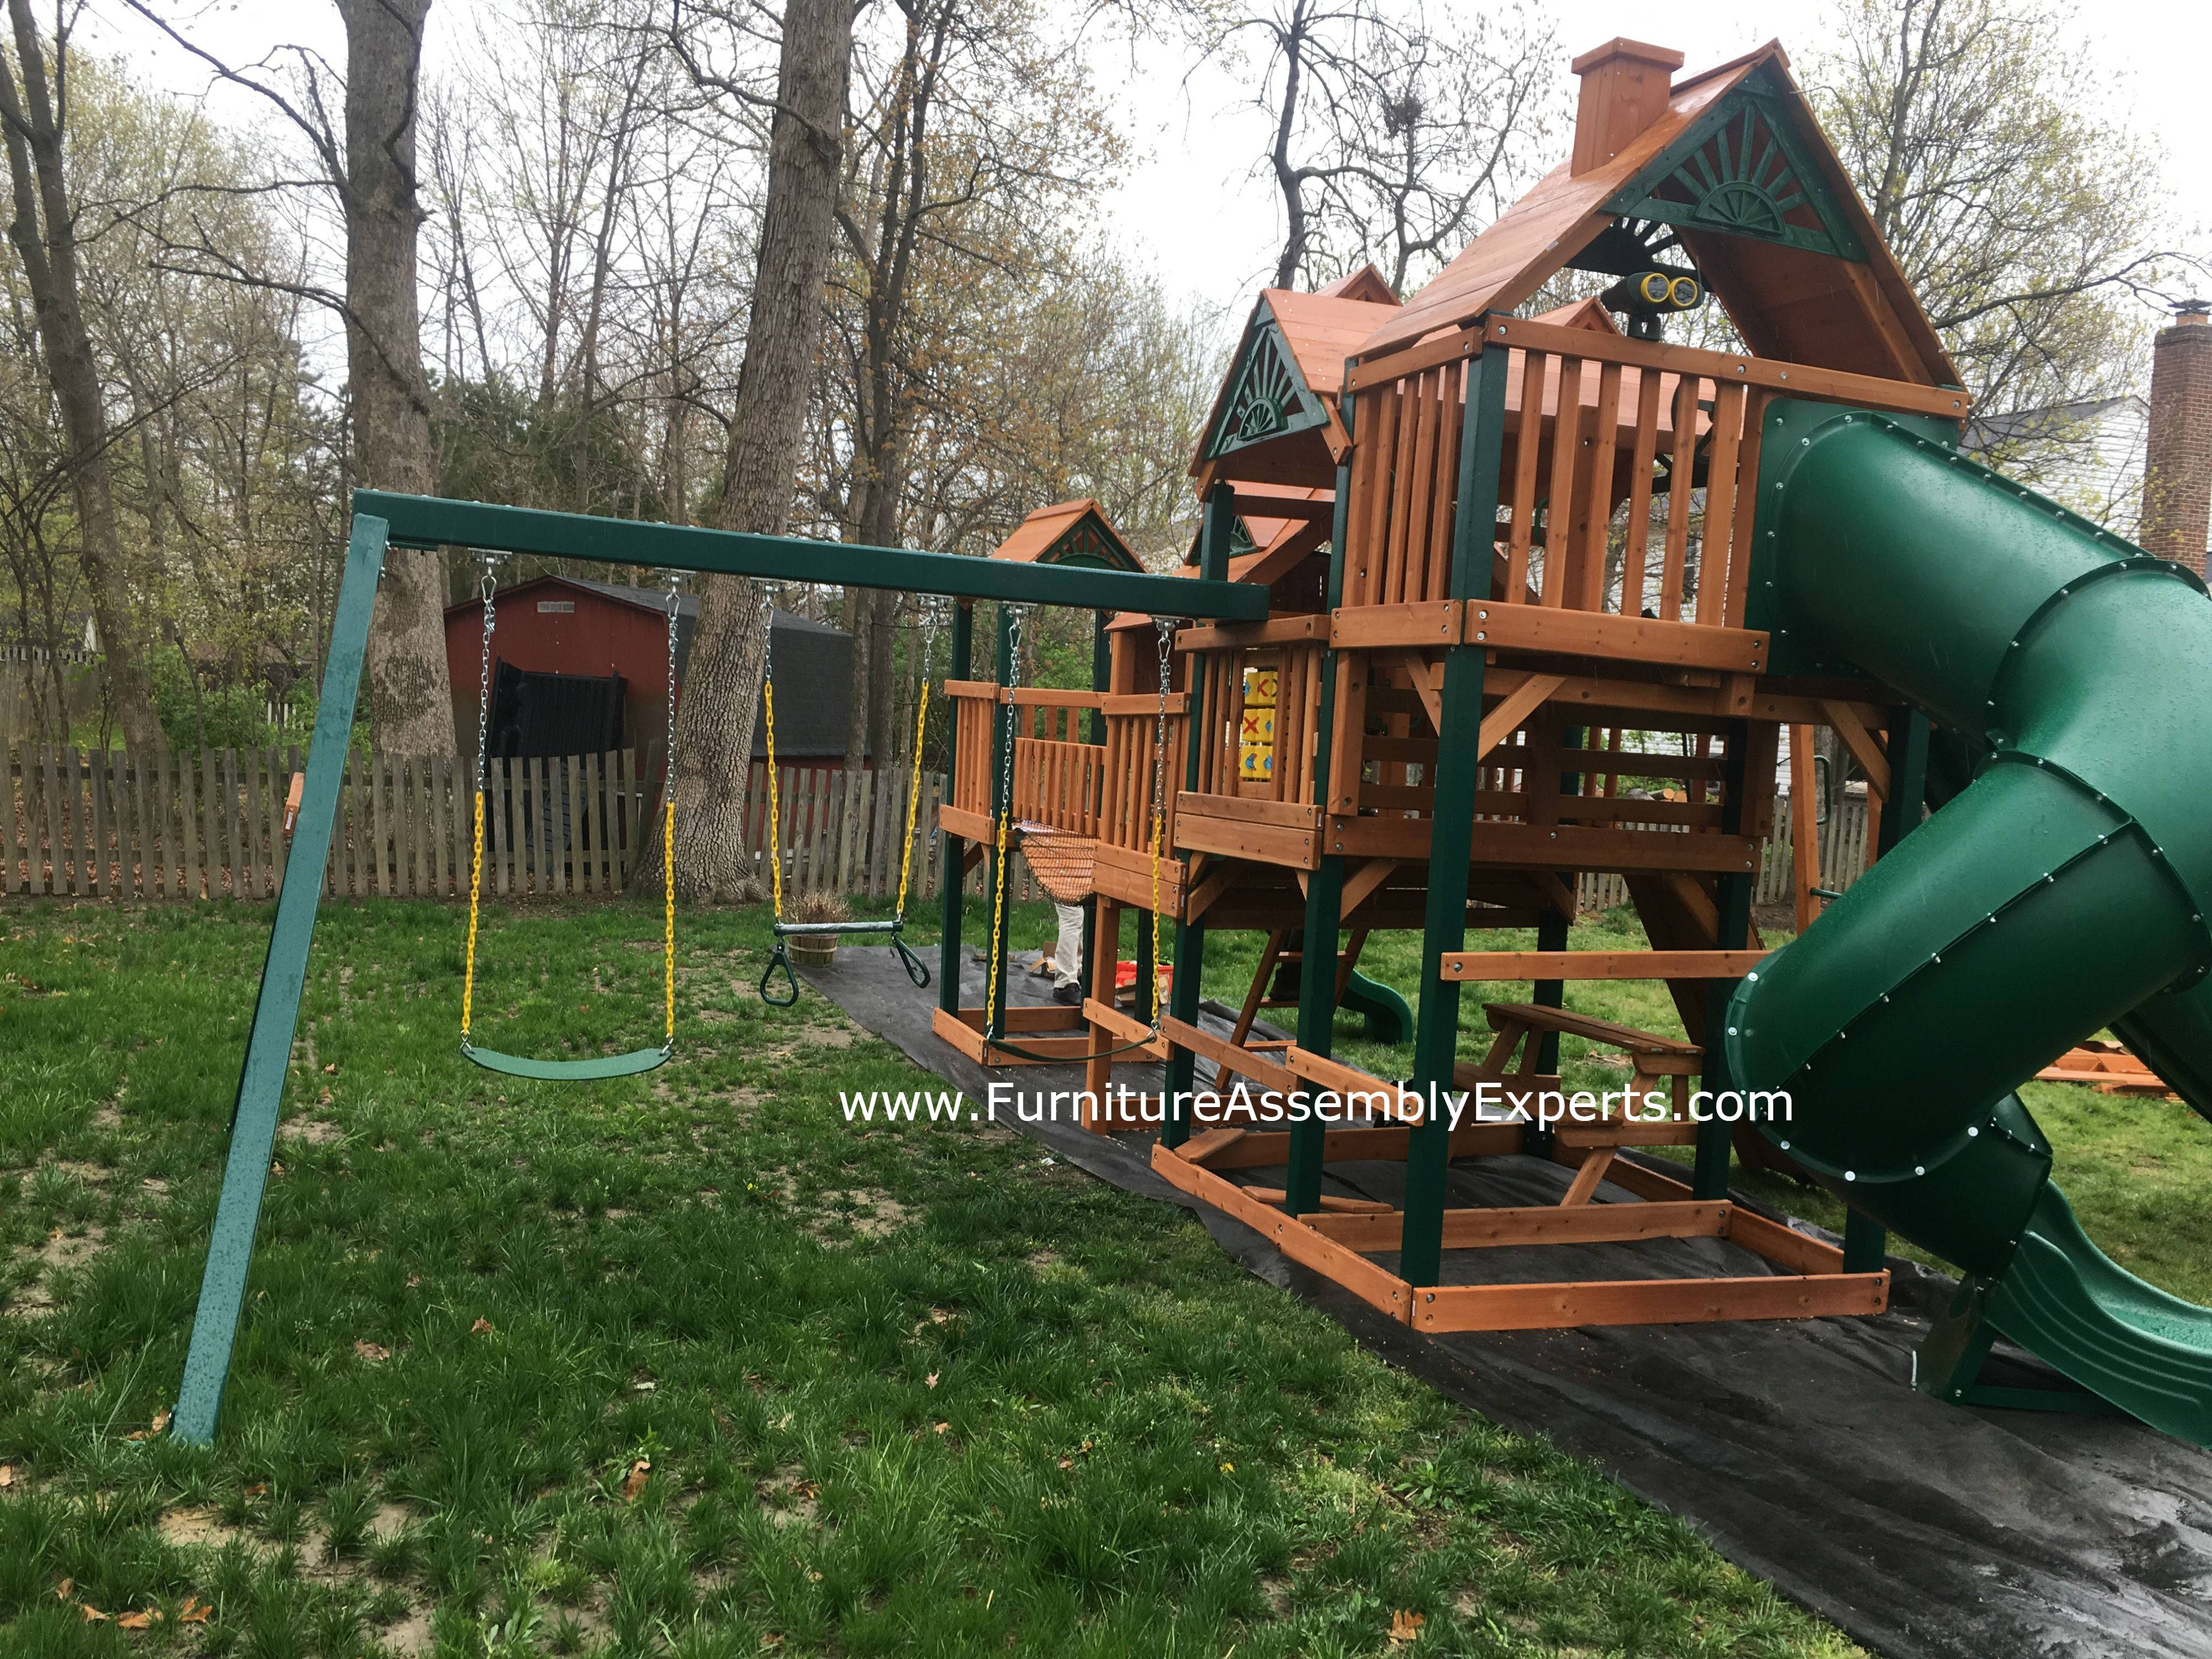 Gorilla empire extreme playset installation in leesburg Virginia